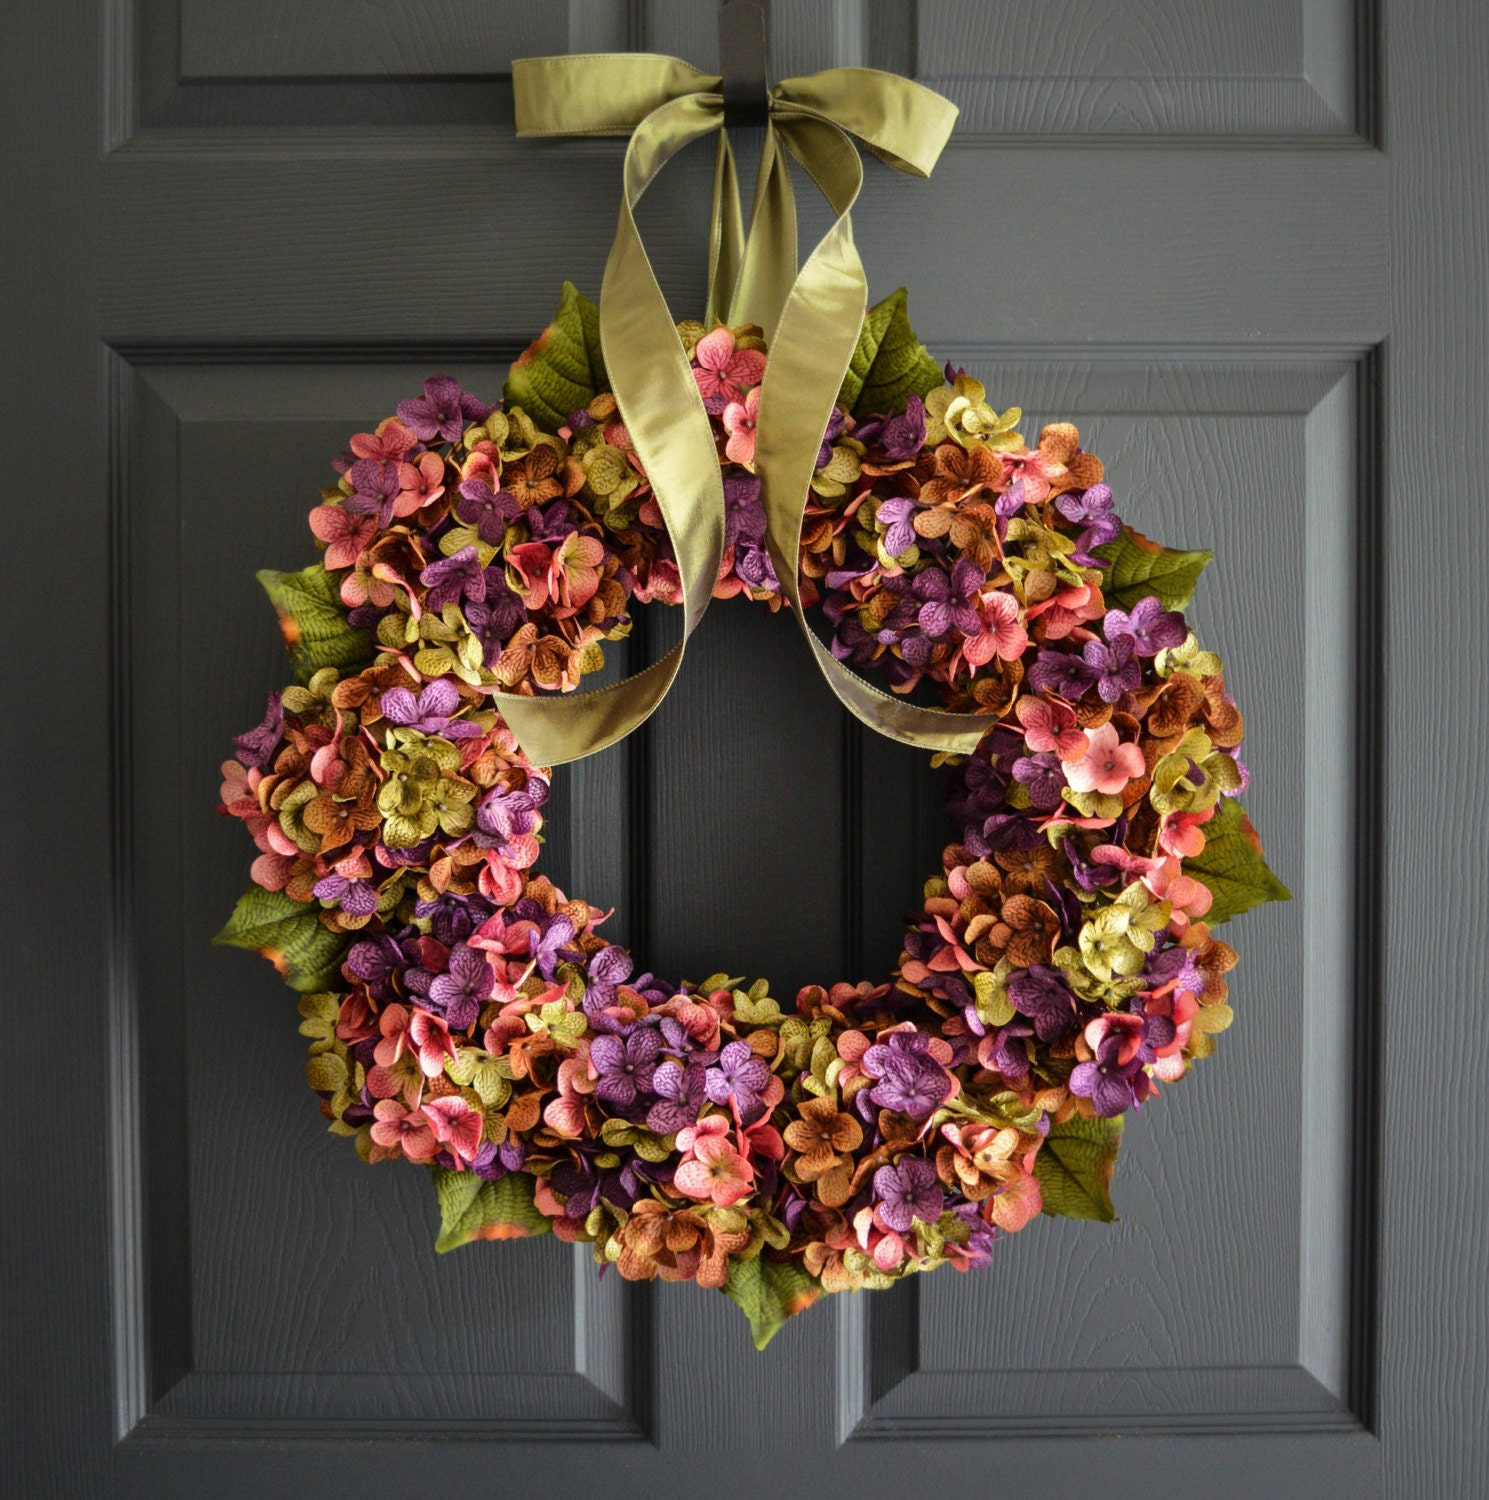 front year day door wreaths customwreathshop spring alert deal mothers hydrangea shop round wreath grapevine everyday etsy farmhouse decor